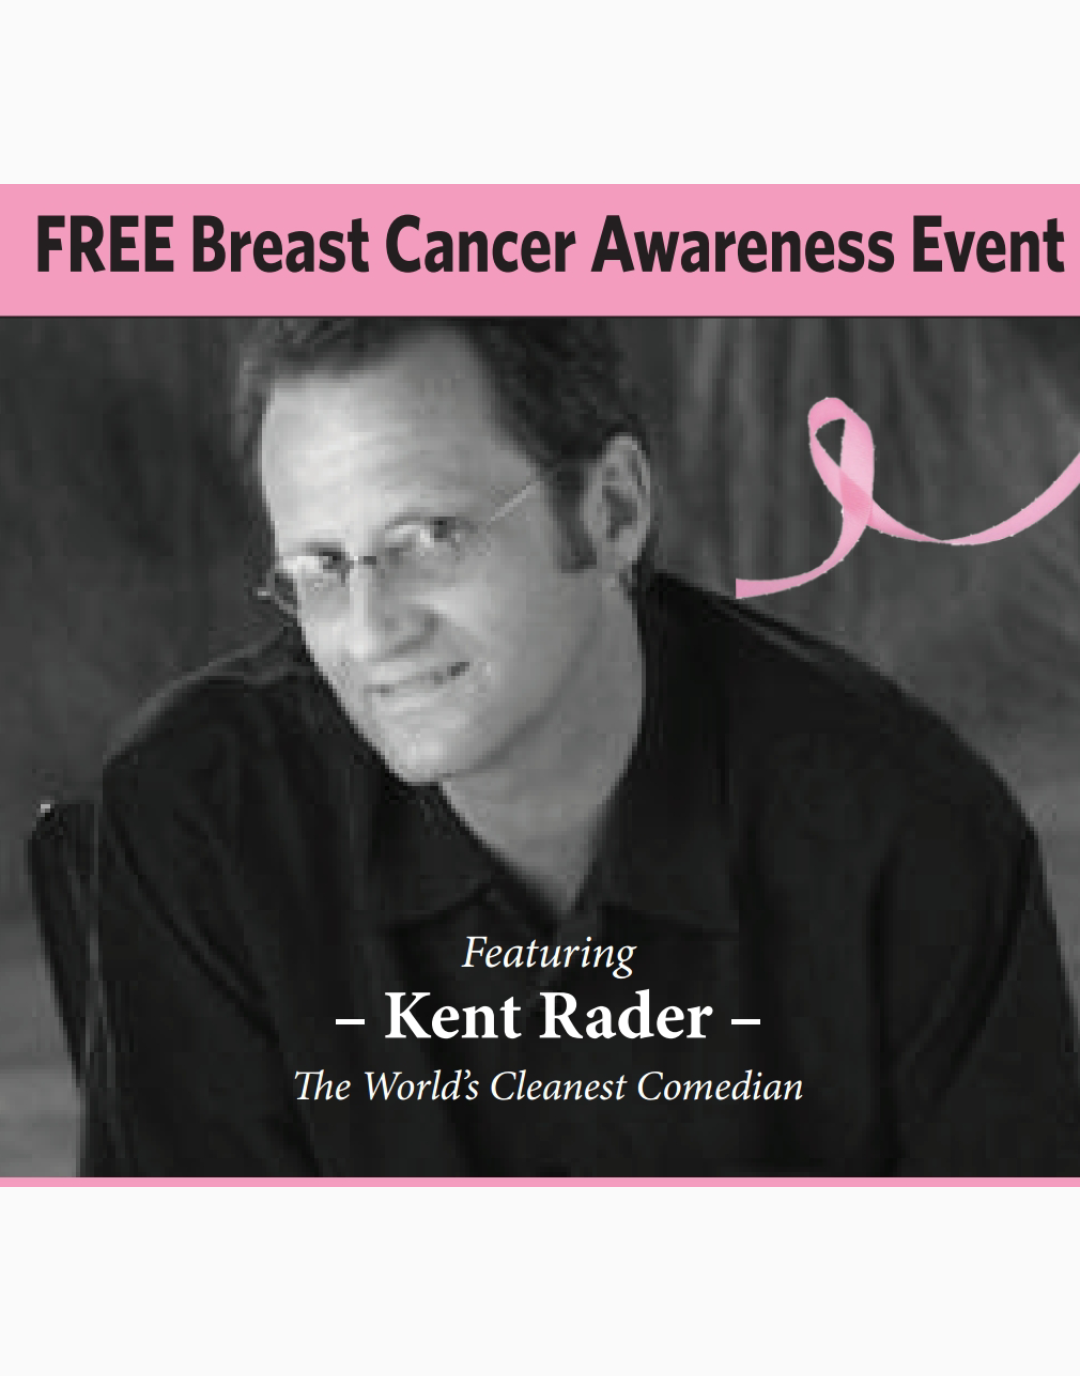 Comedian to Headline Cancer Event